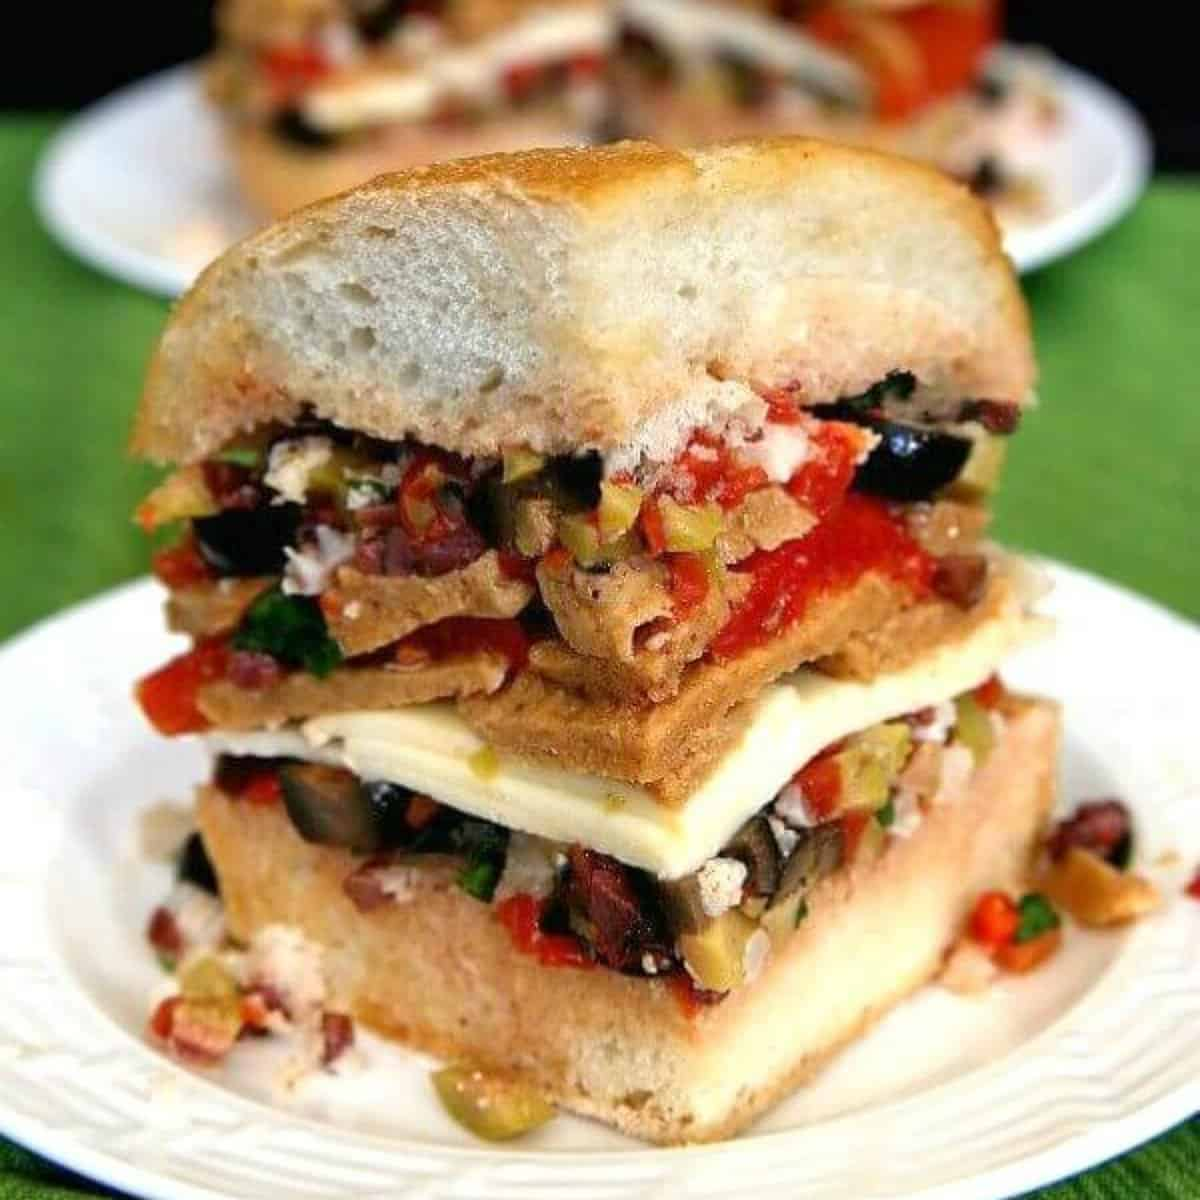 Wedge slice of piled high layered sandwich on a white plate.